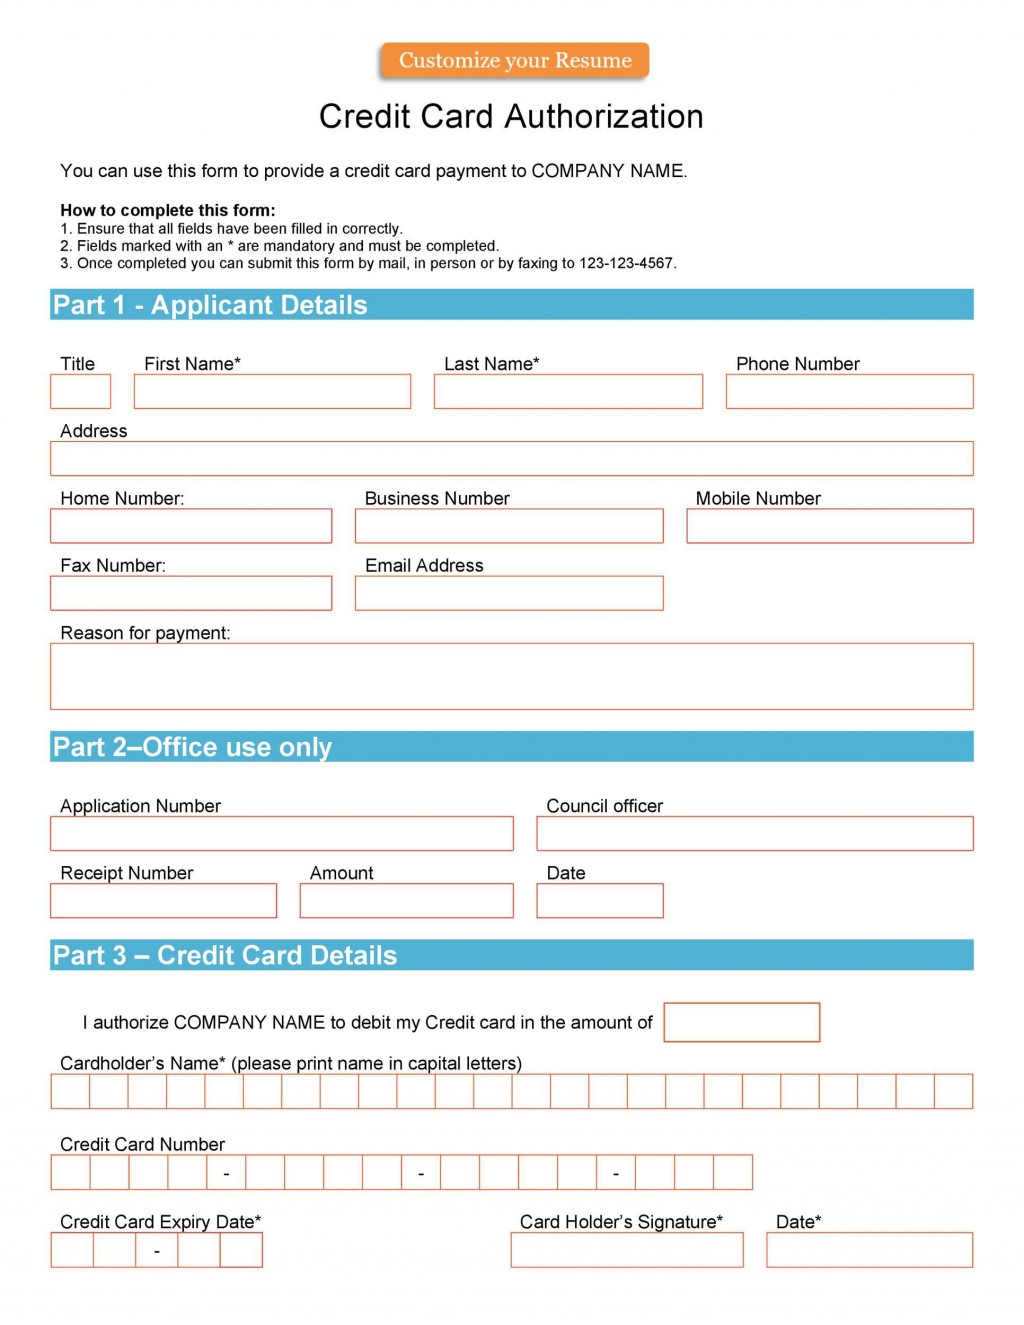 004 Unusual Credit Card Usage Request Form Template Example Large